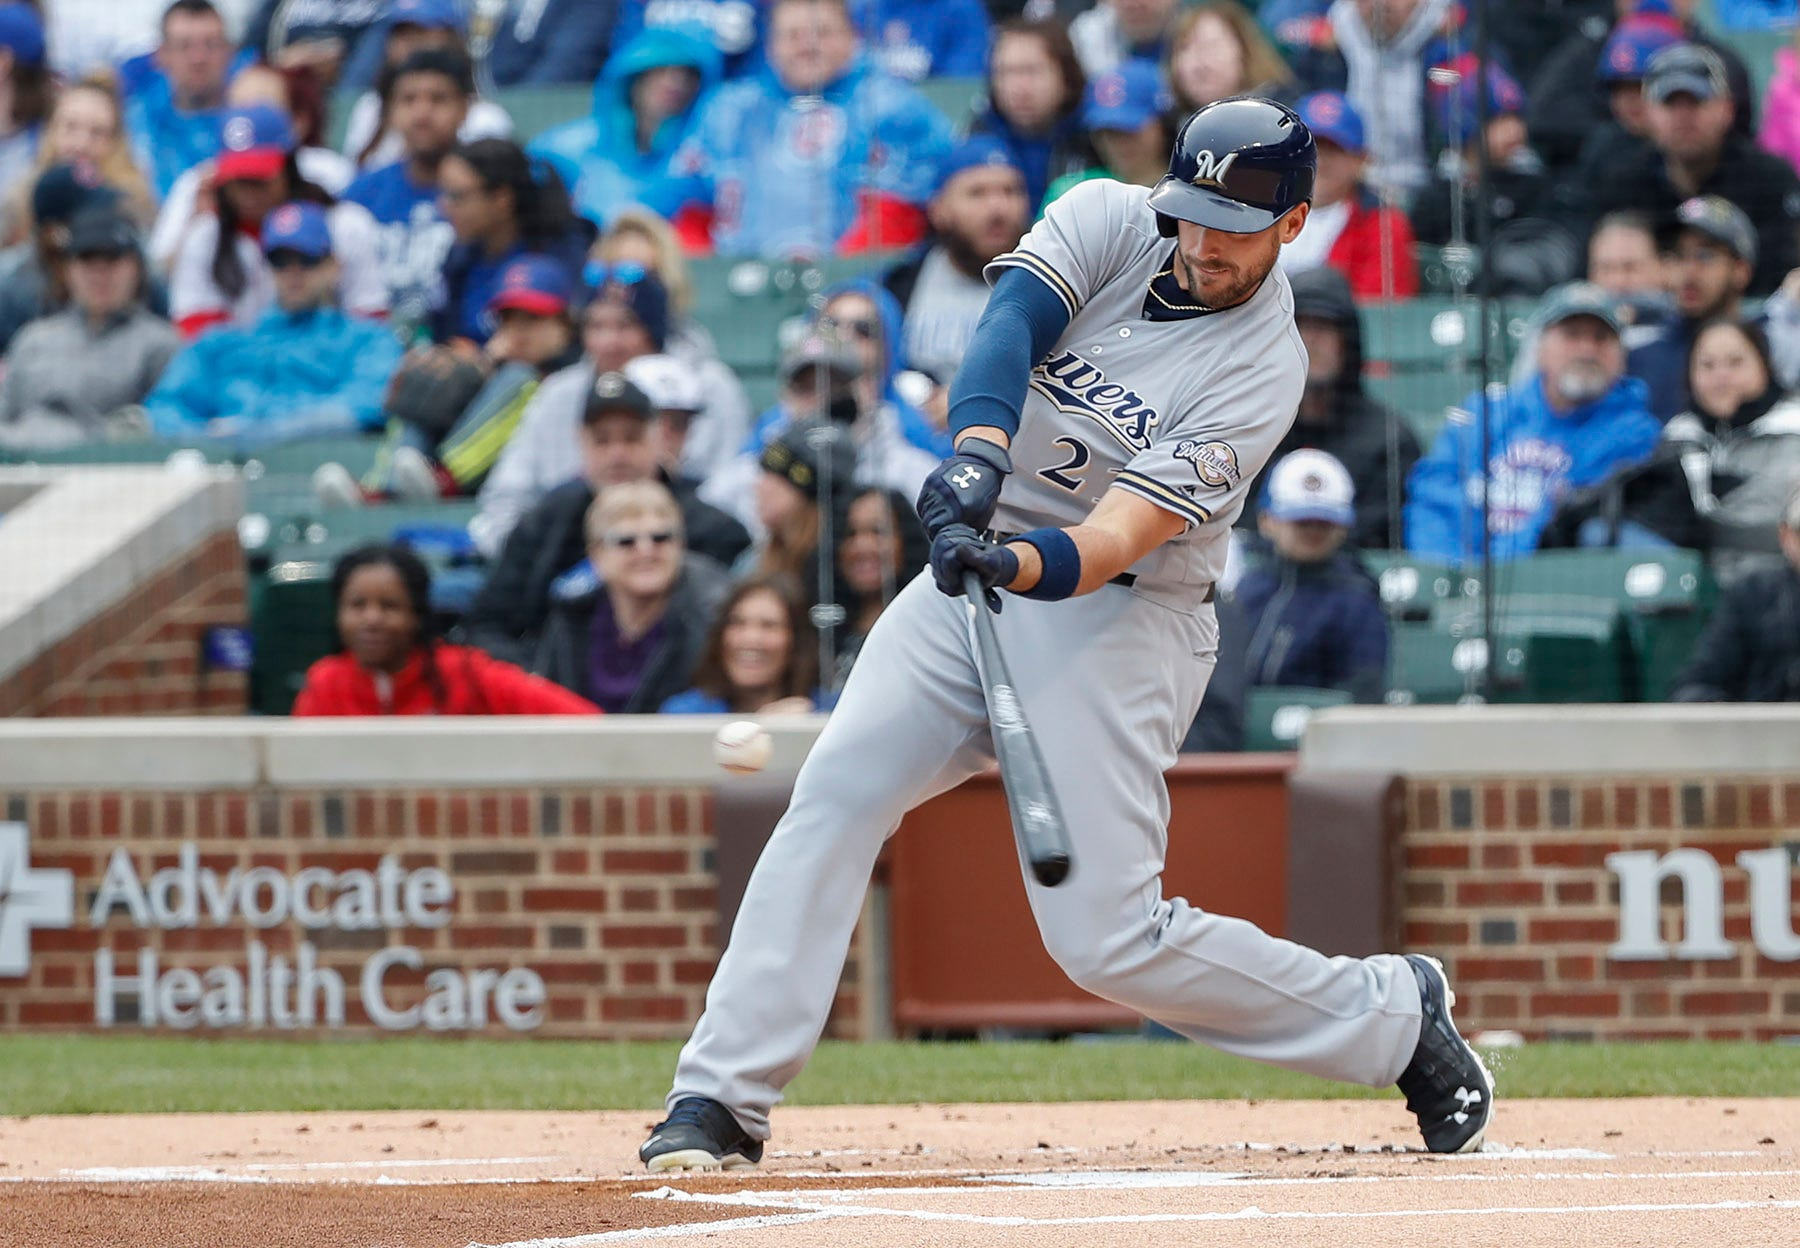 Power surge working well for Brewers